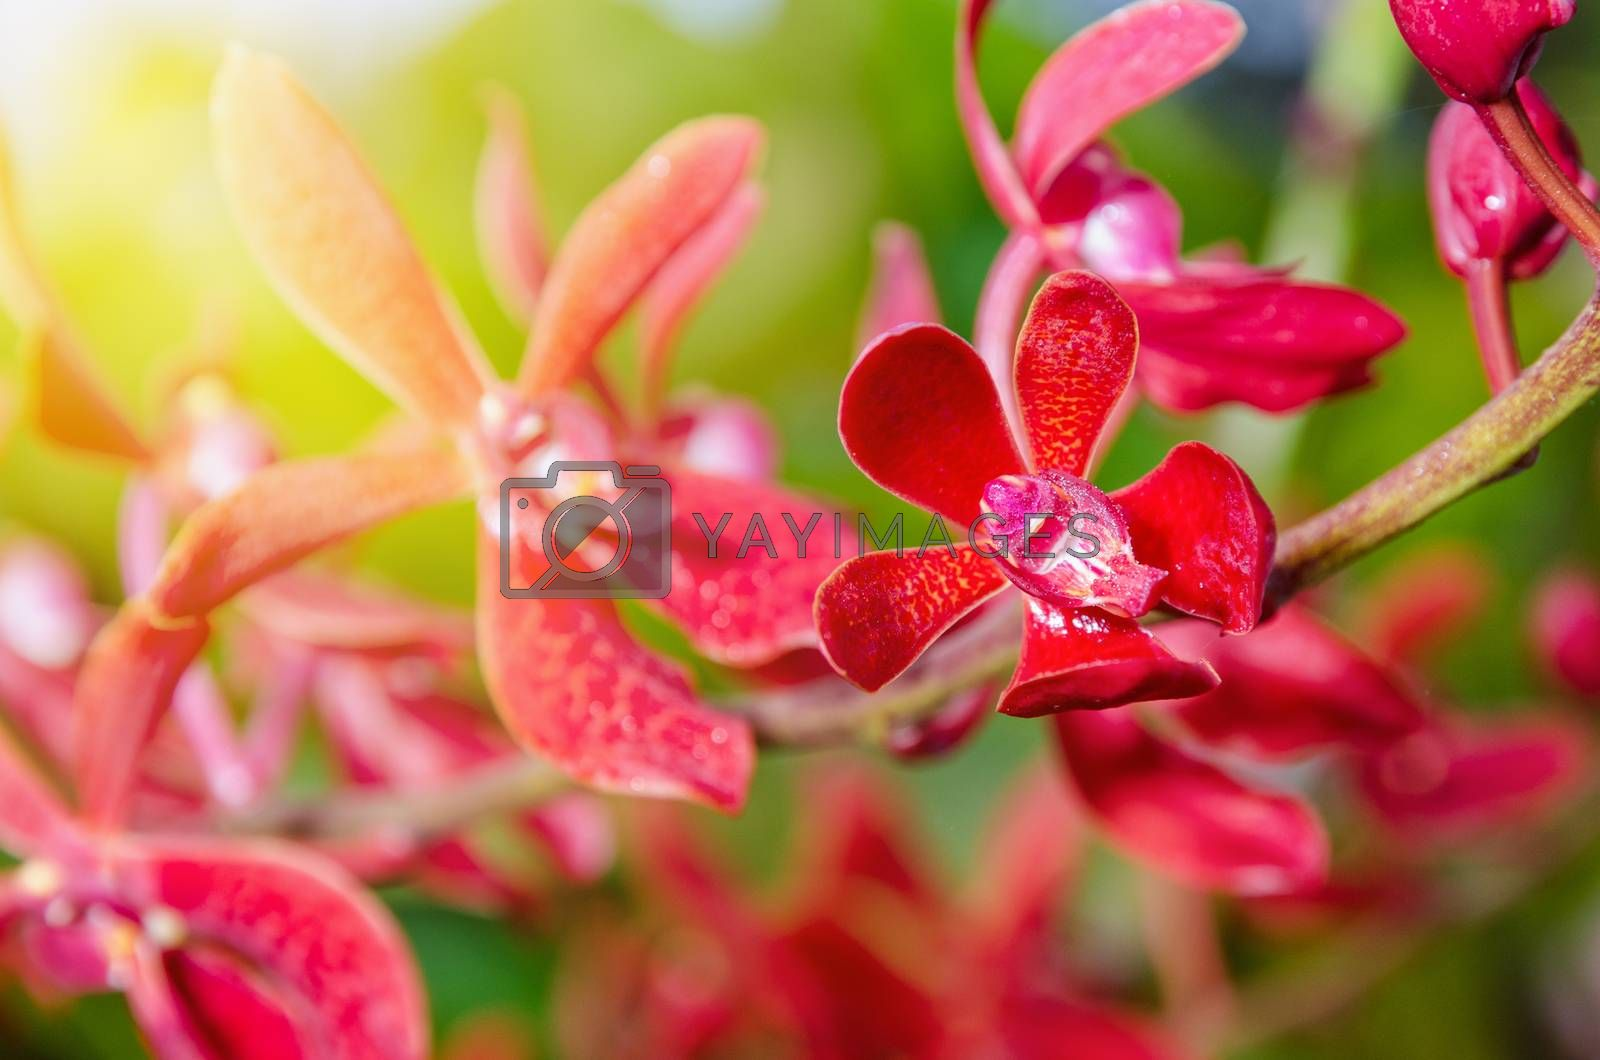 Close-up of red flowers and sunlight is a beautiful nature of Renanopsis Lena Rowold or Rhynchostylis Orchid on the branch of tree